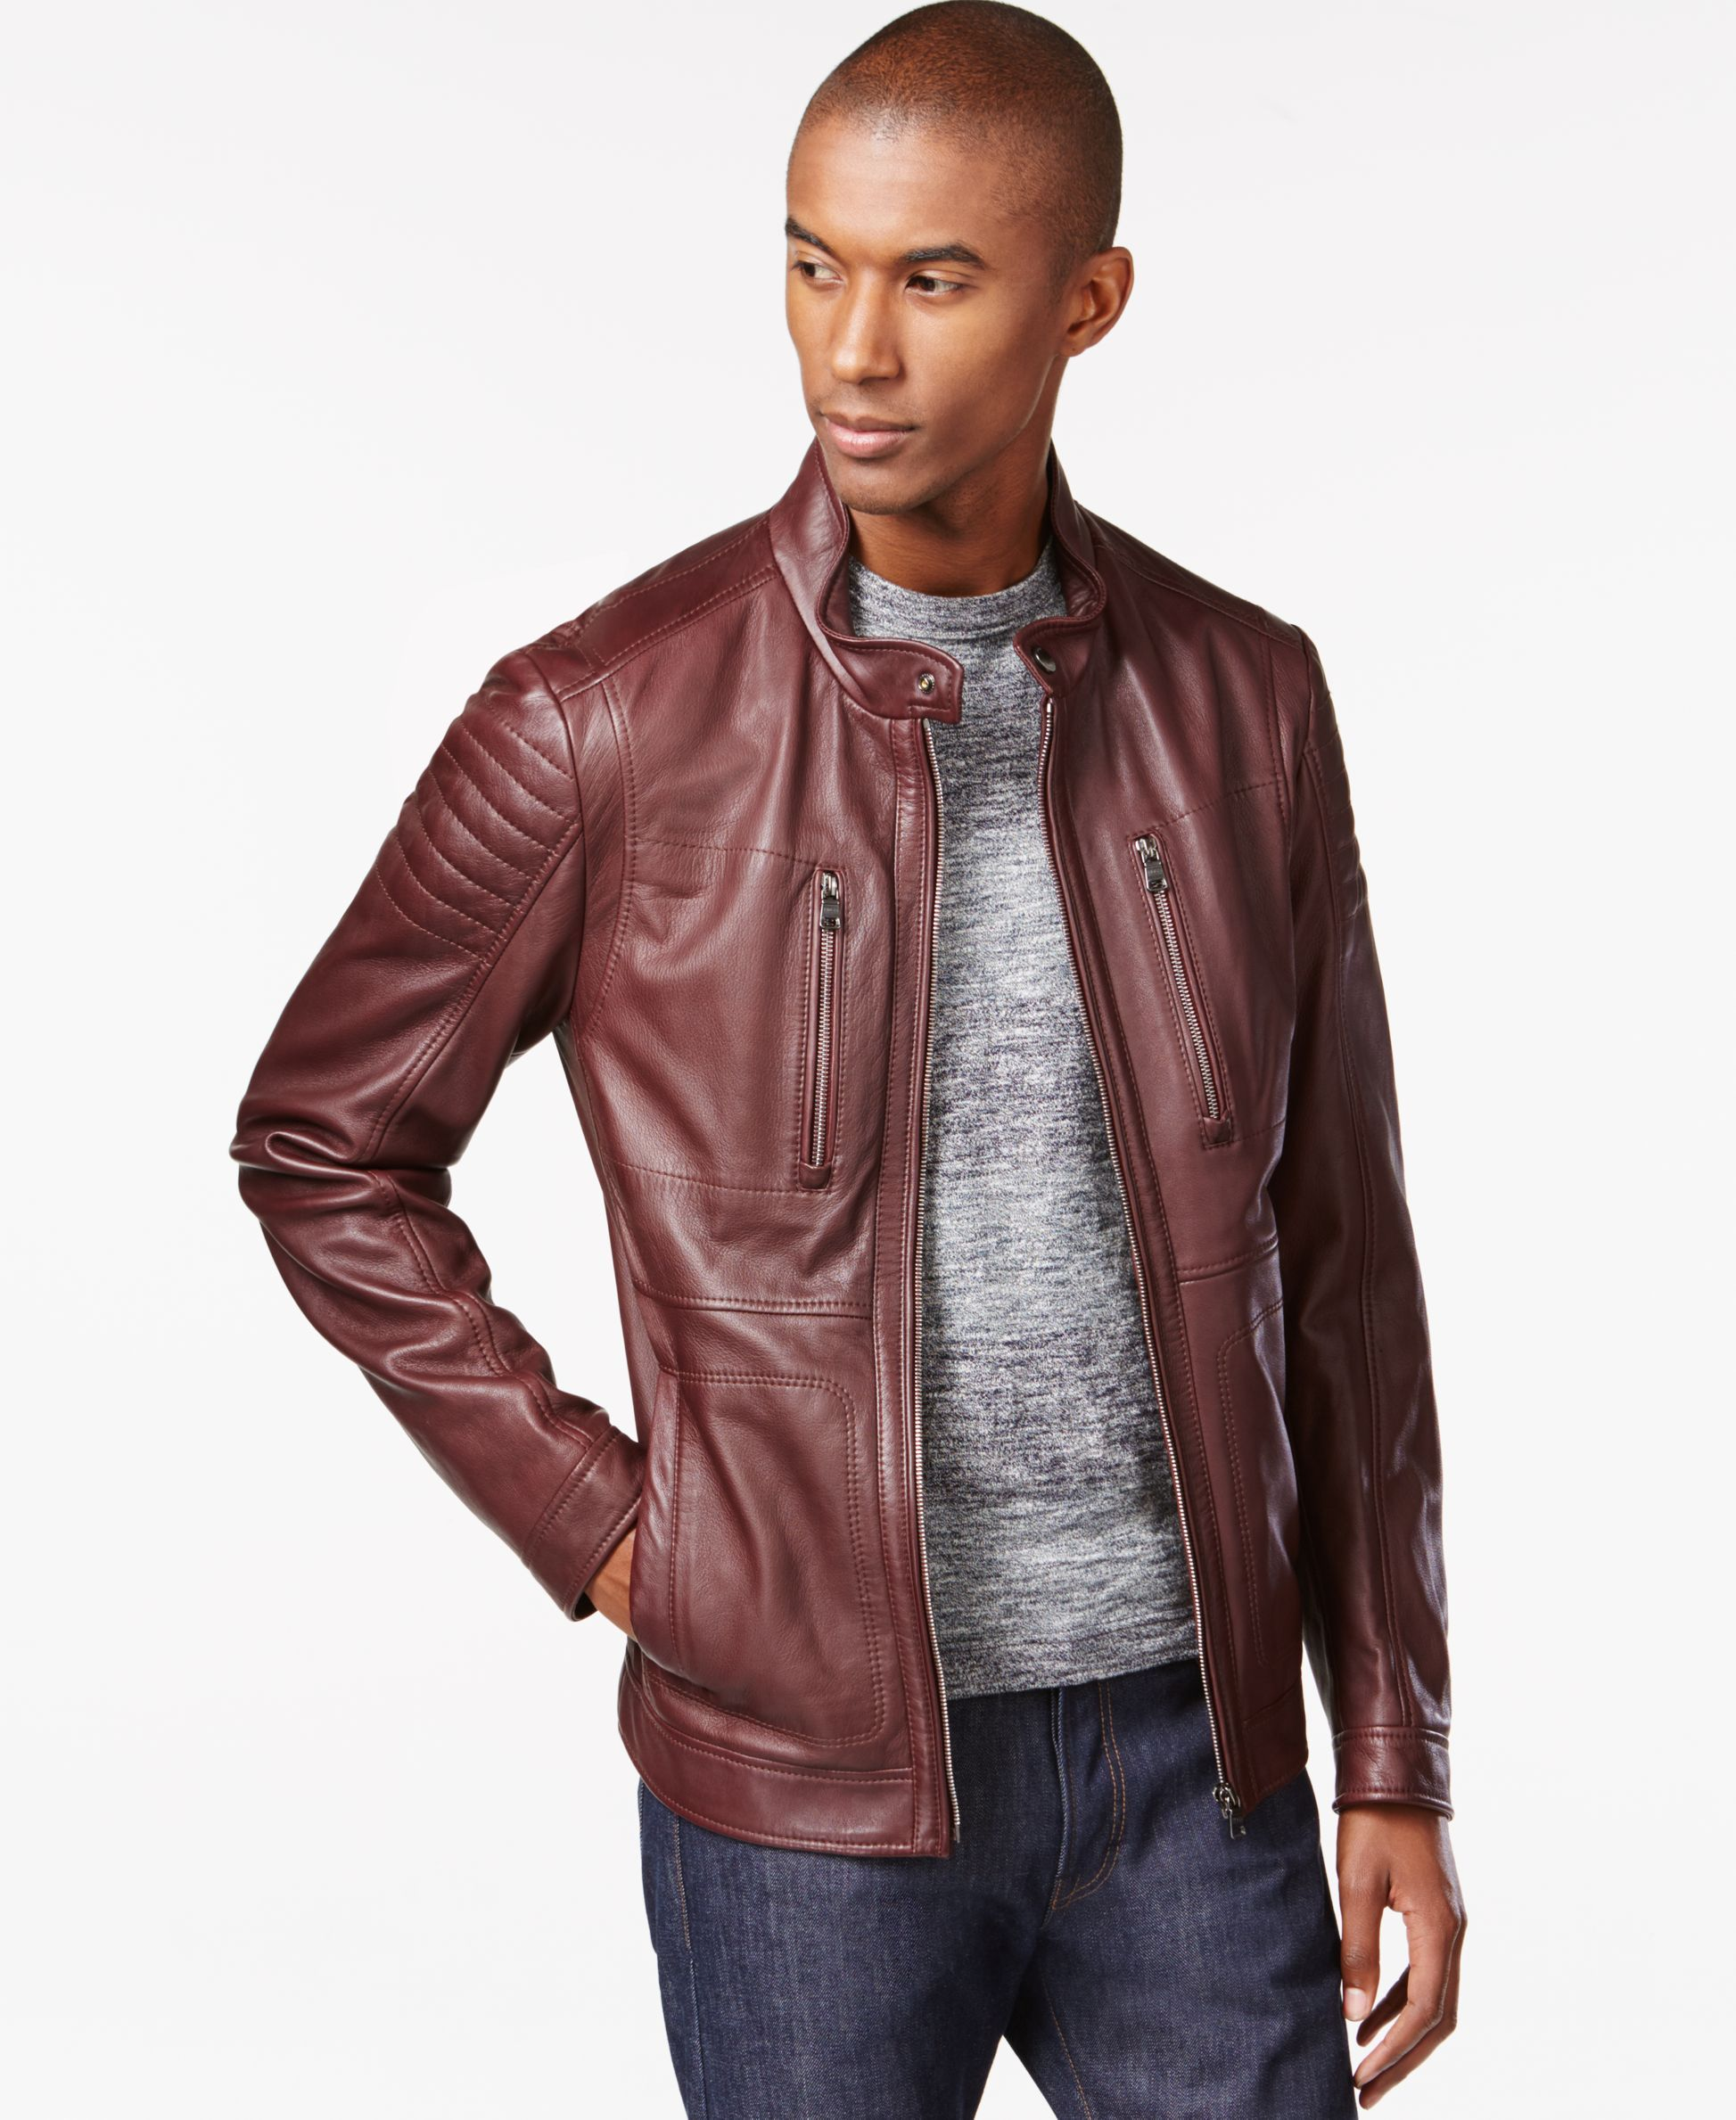 Boss Hugo Boss Naquinn LambskinLeather Jacket Leather